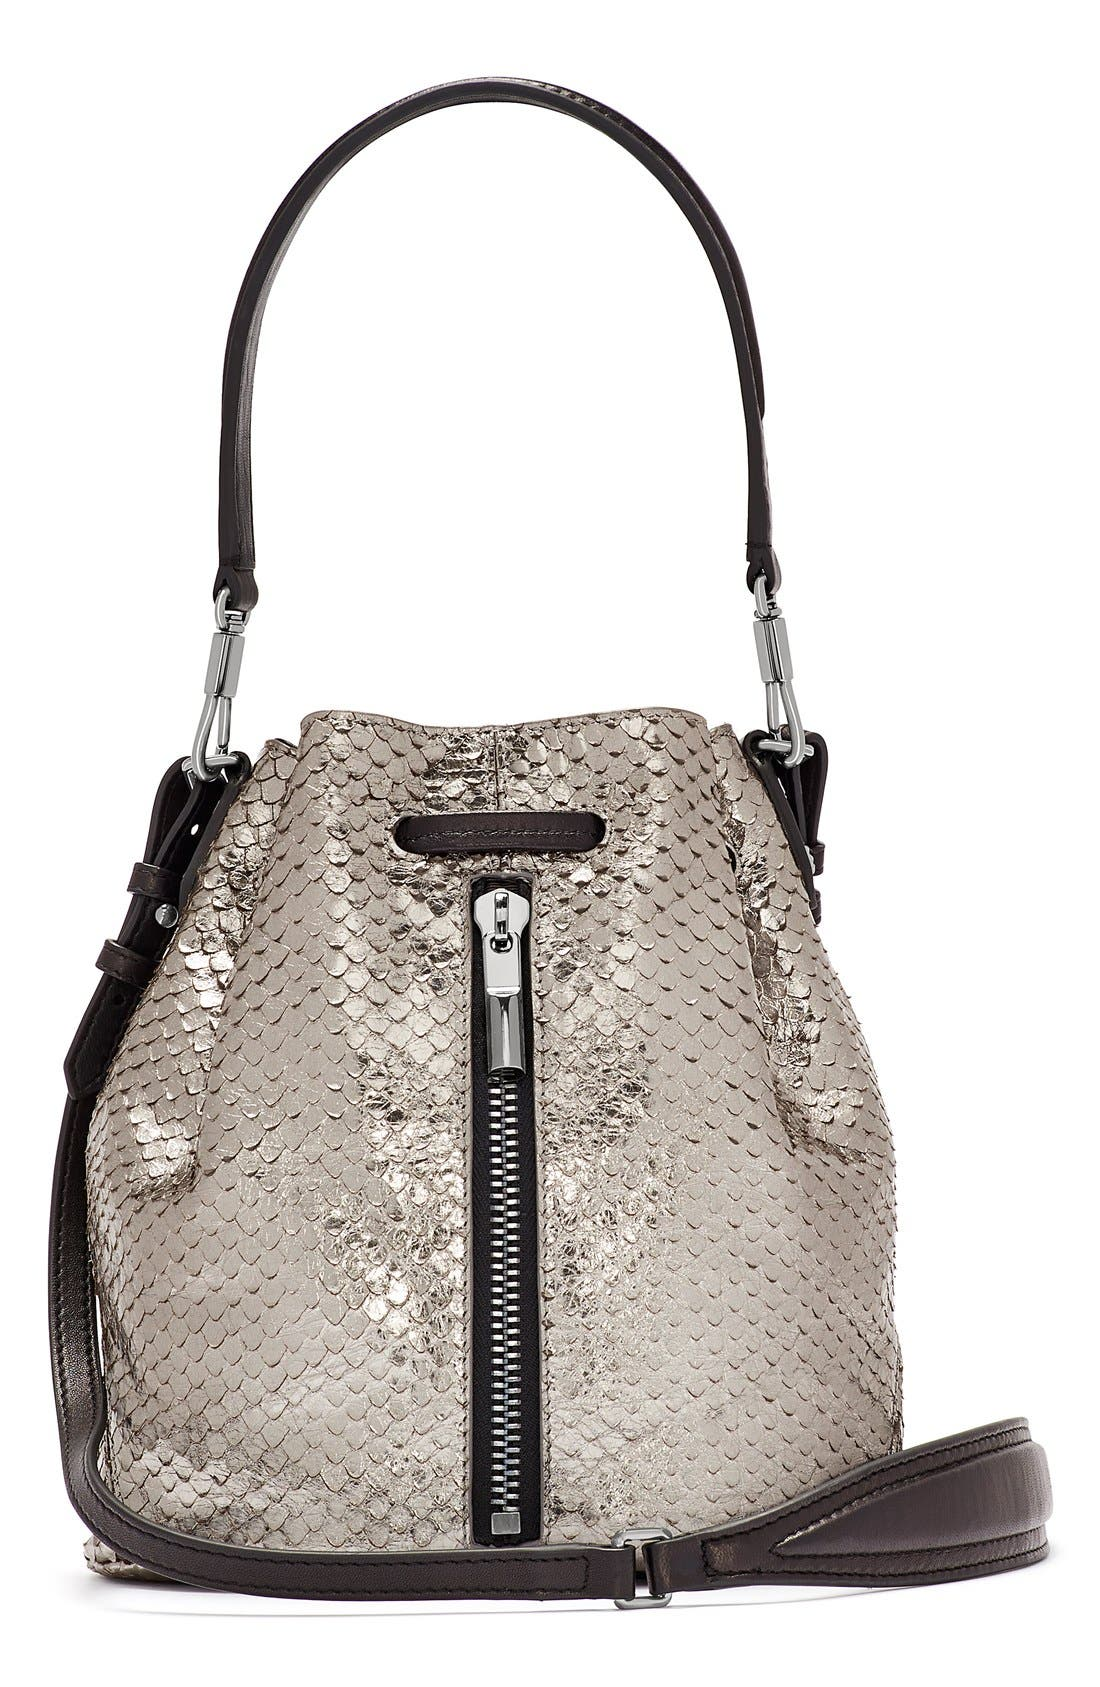 Alternate Image 1 Selected - Elizabeth and James 'Mini Cynnie' Snake Effect Leather Convertible Bucket Bag